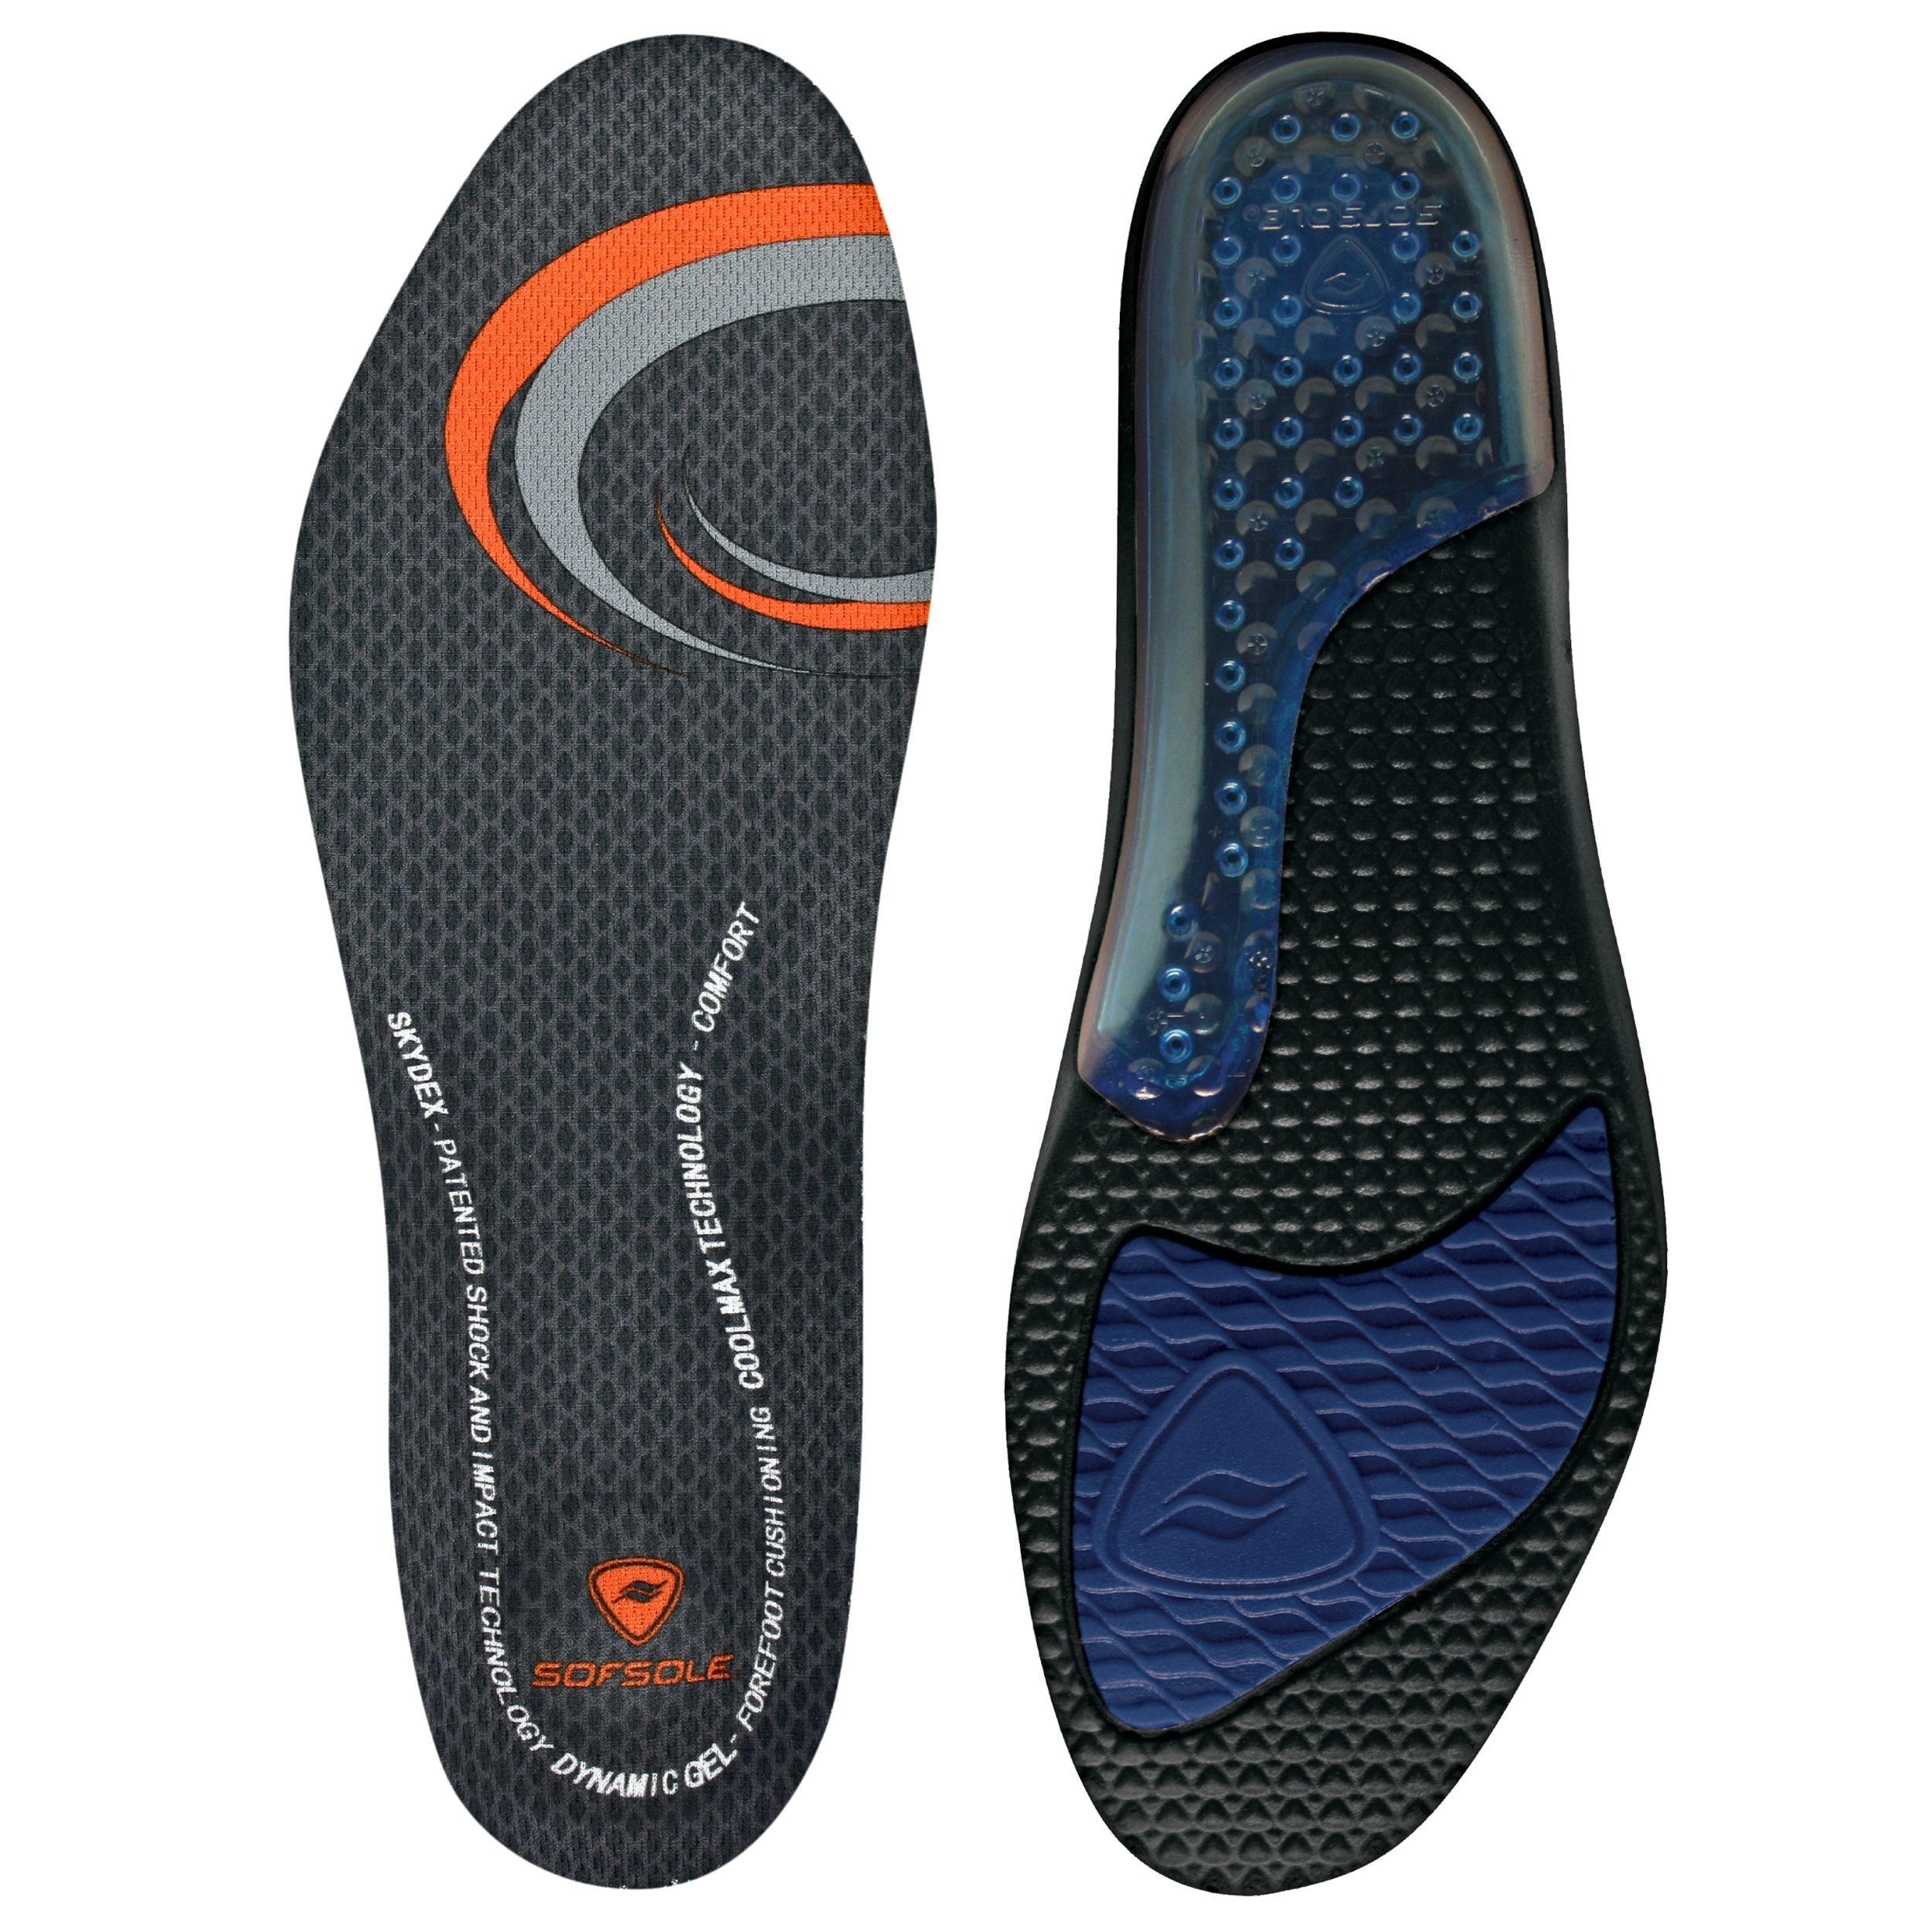 Sof Sole Insoles Men's AIRR Performance Full-Length Gel Shoe Insert by Sof Sole